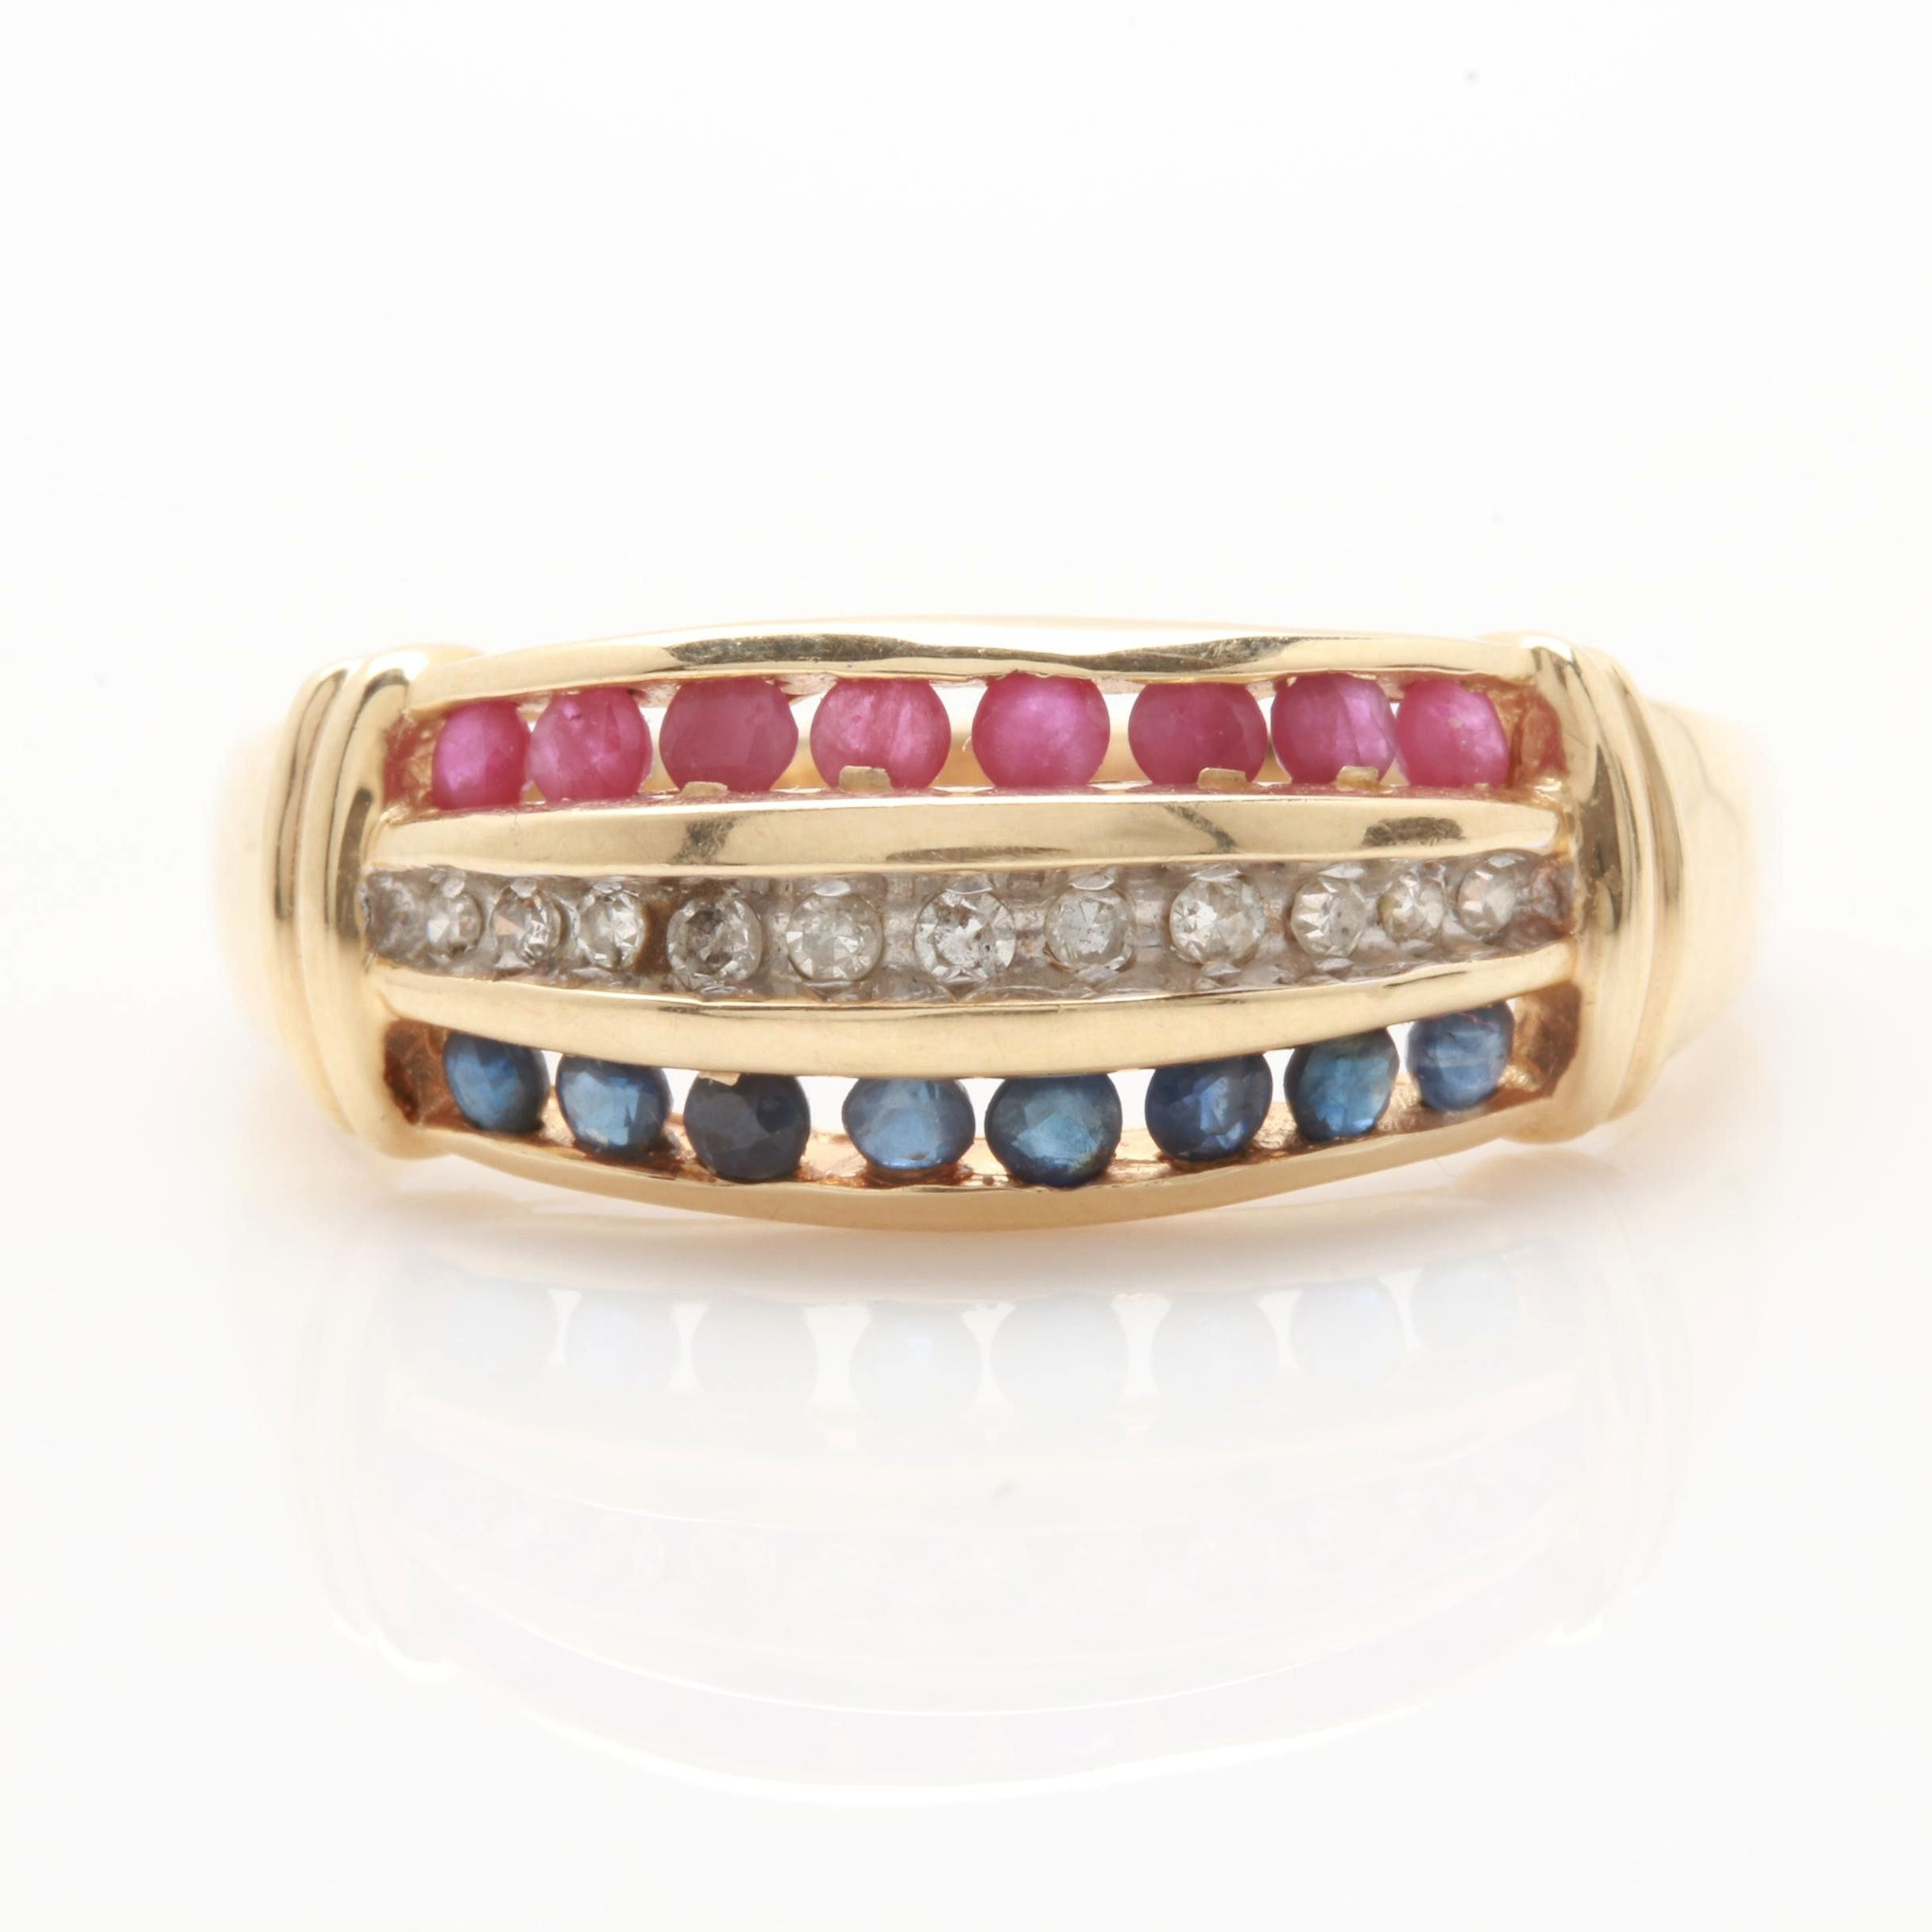 Alwand Vahan 14K Yellow Gold Diamond, Ruby and Sapphire Ring